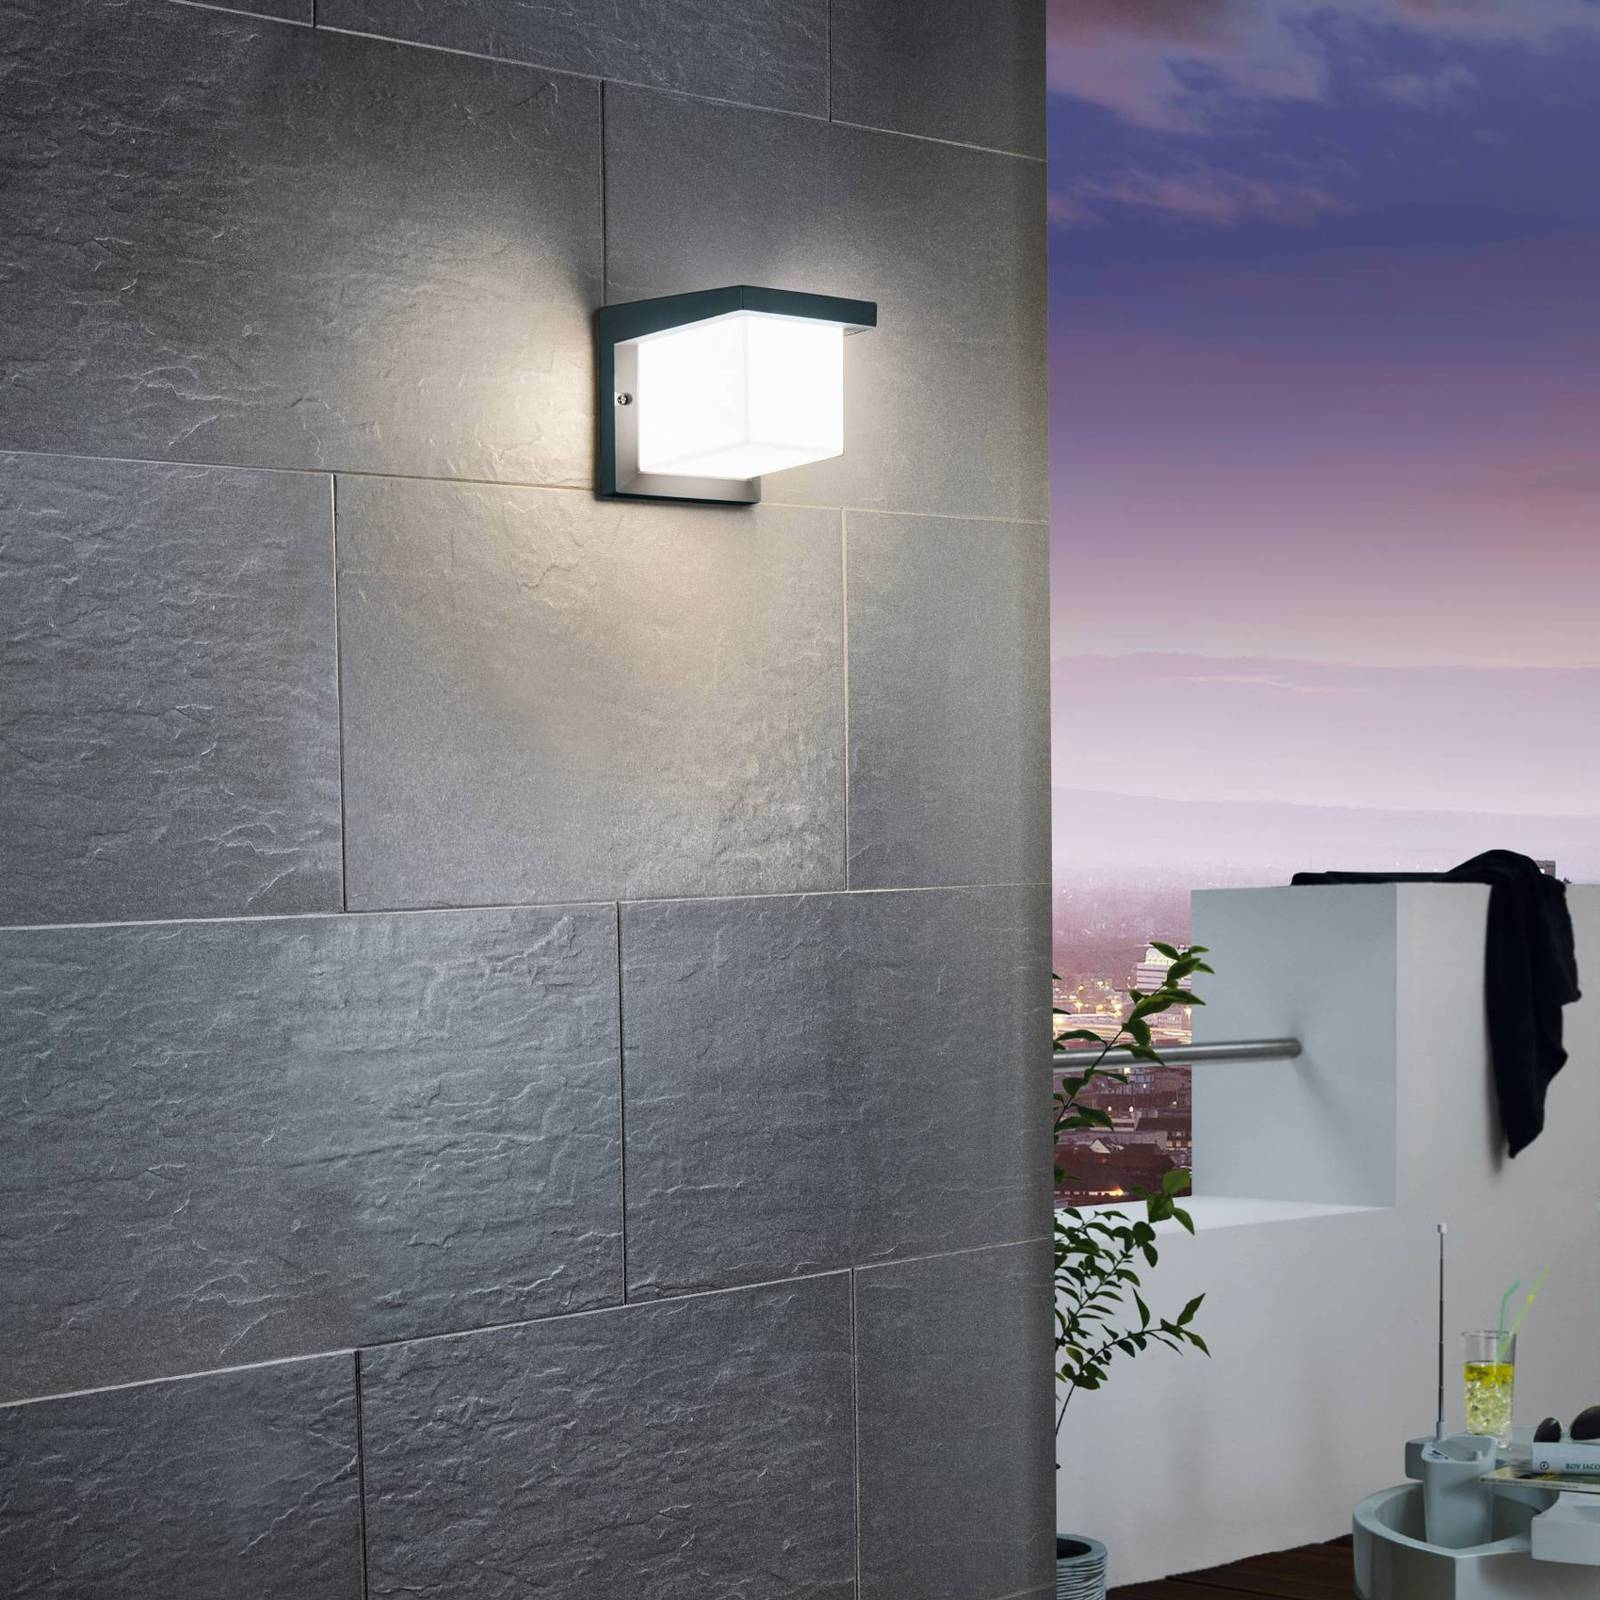 Cube-shaped Desella LED outdoor wall light from EGLO